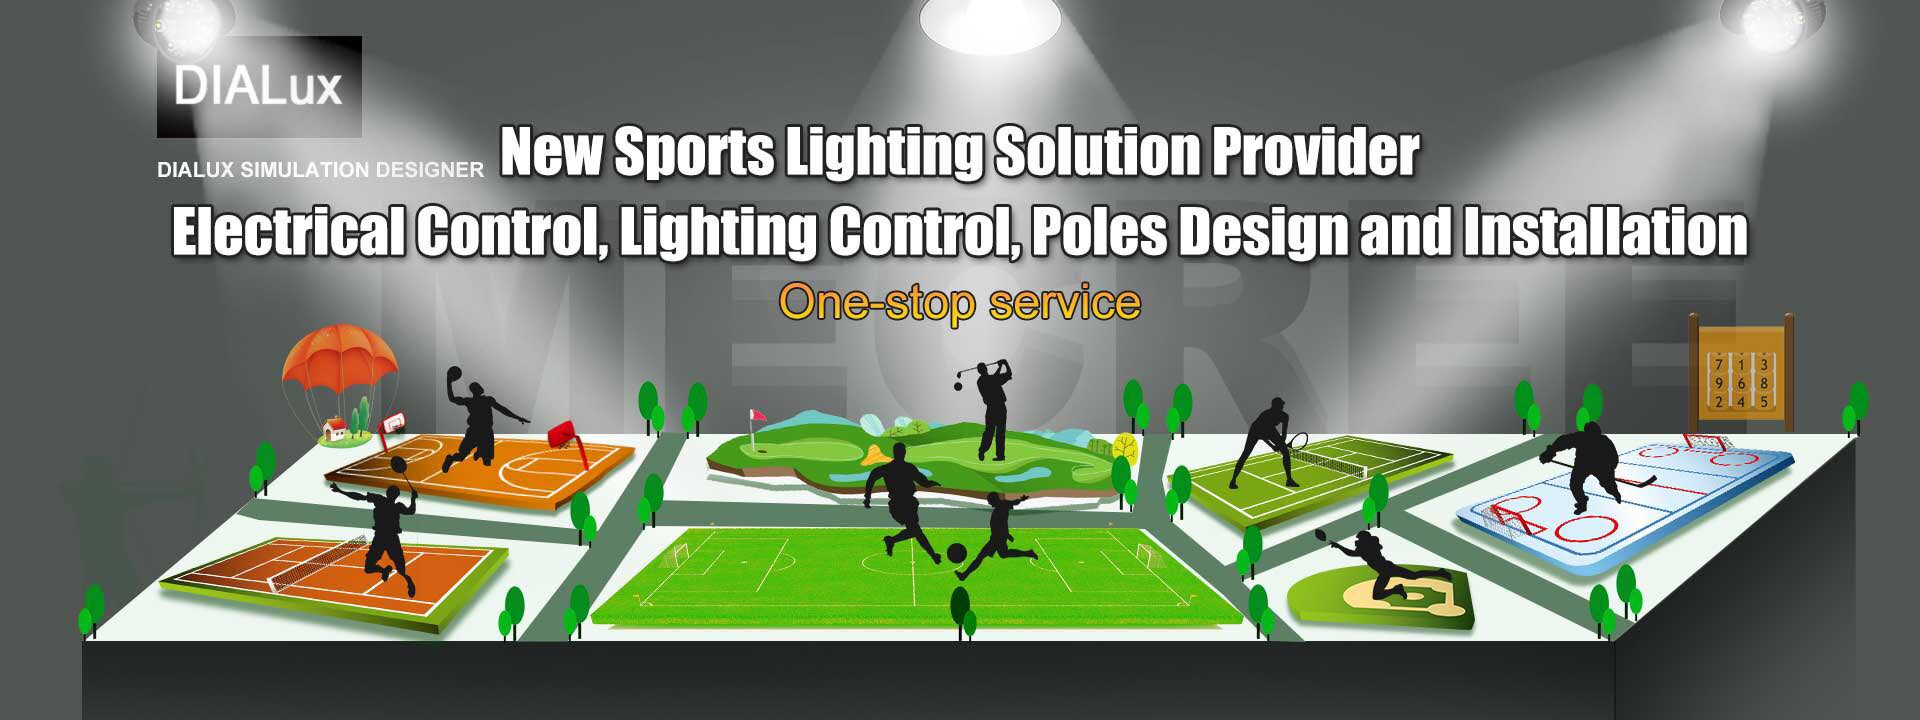 PROFESSIONAL LIGHTING FOR SPORT FIELD